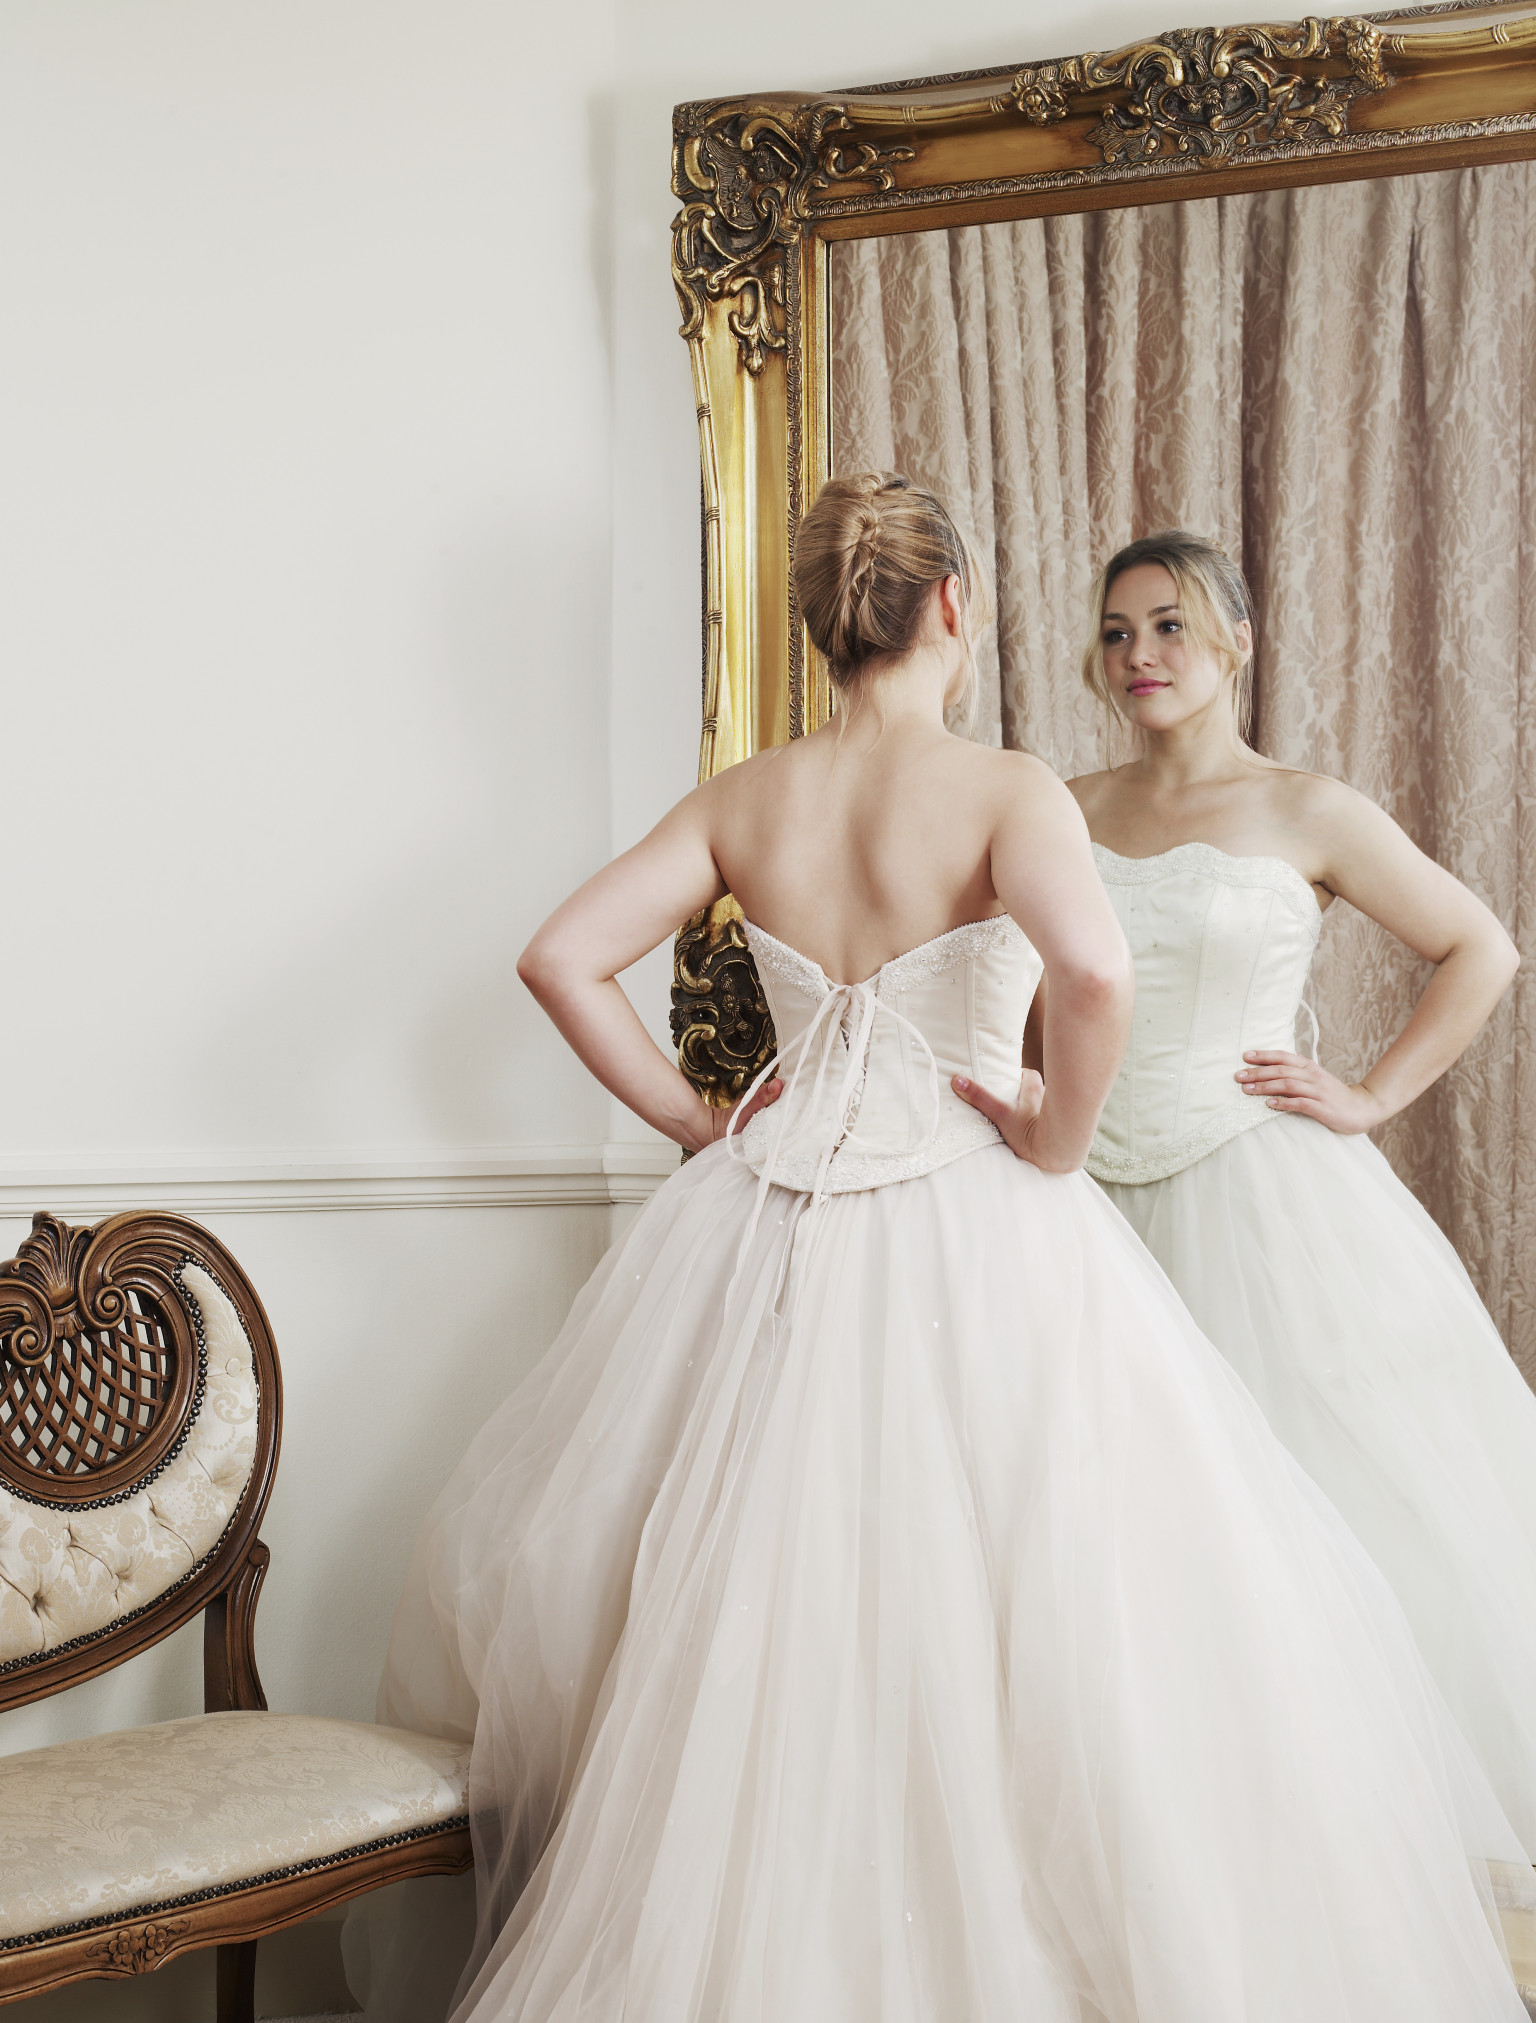 Where To Sell Wedding Dresses Style Of Bridesmaid Dresses